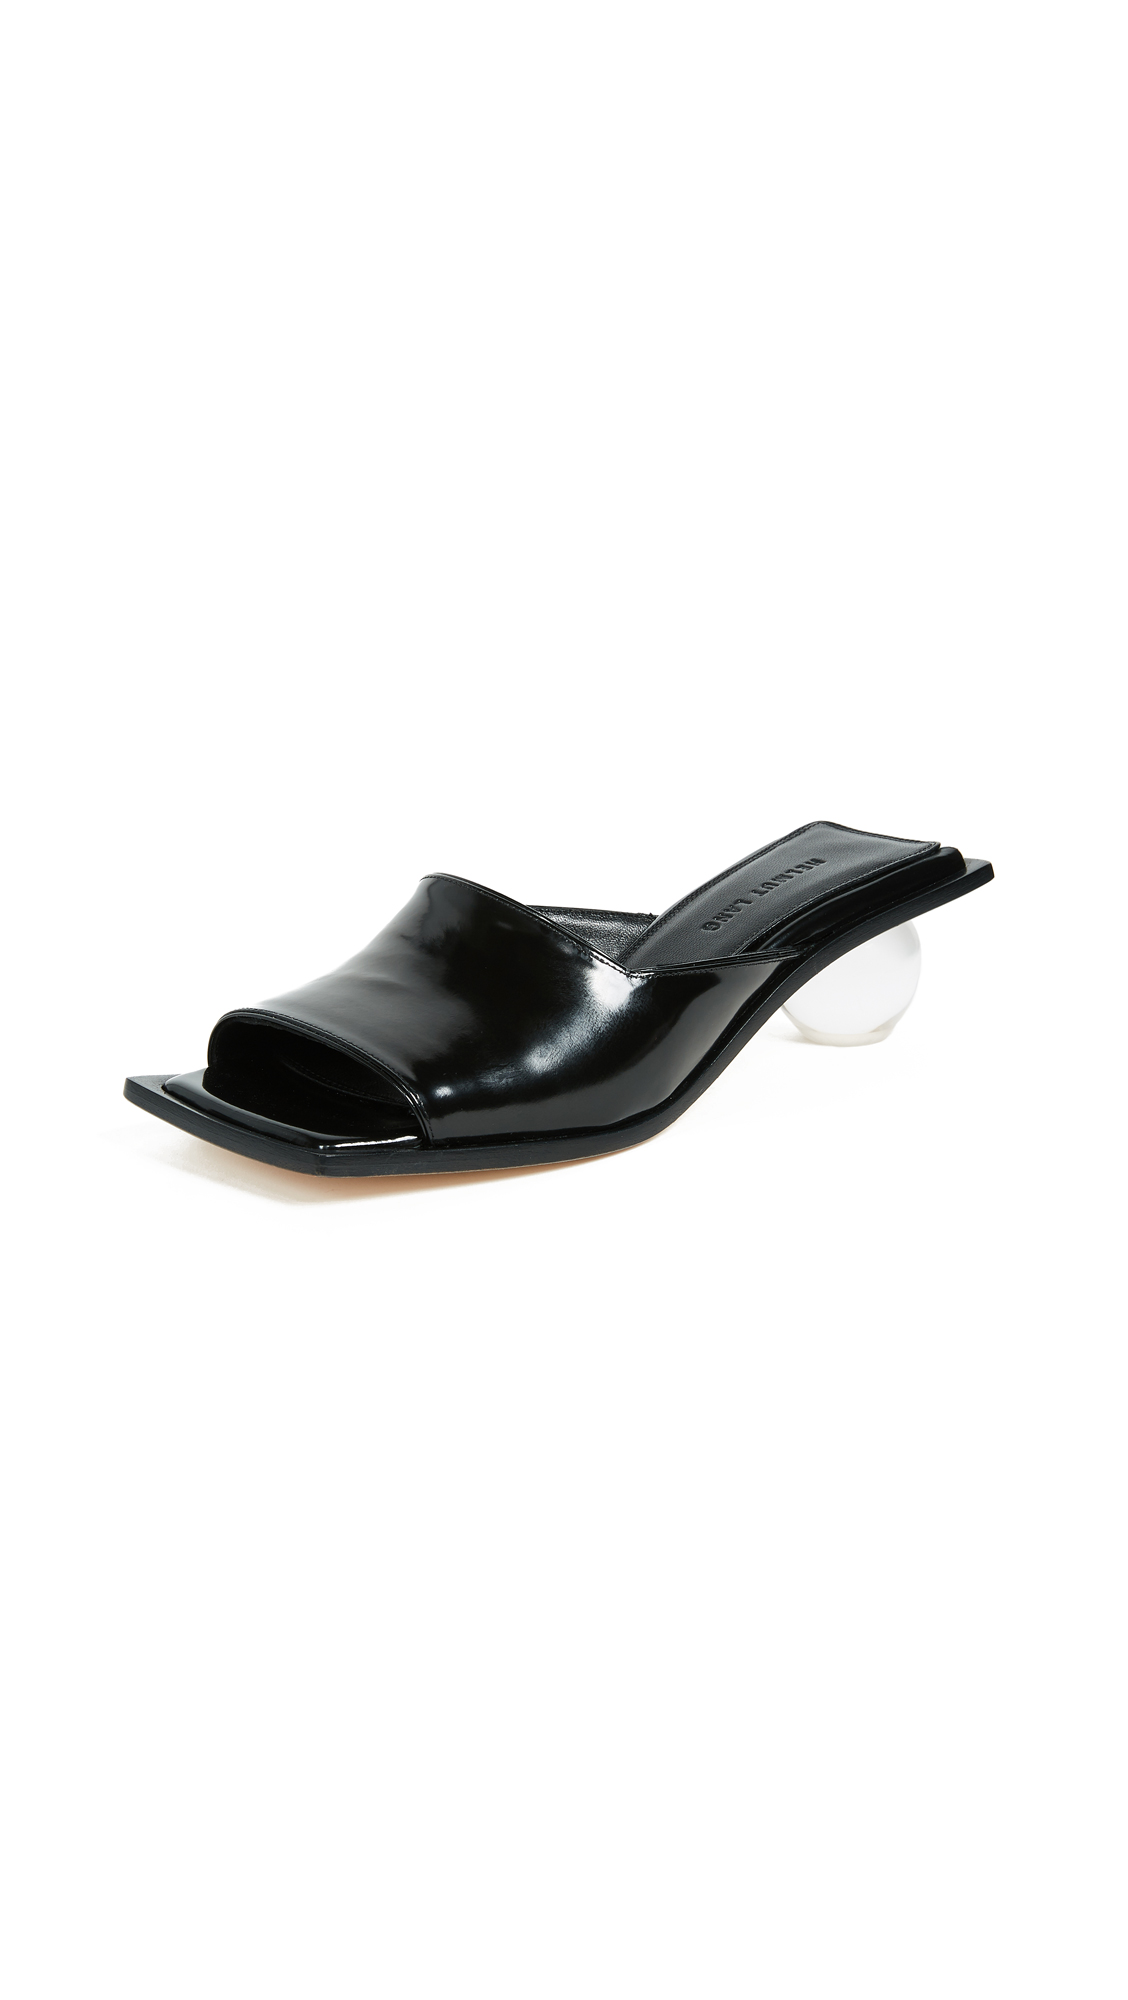 Helmut Lang Lucite Ball Slides - Black